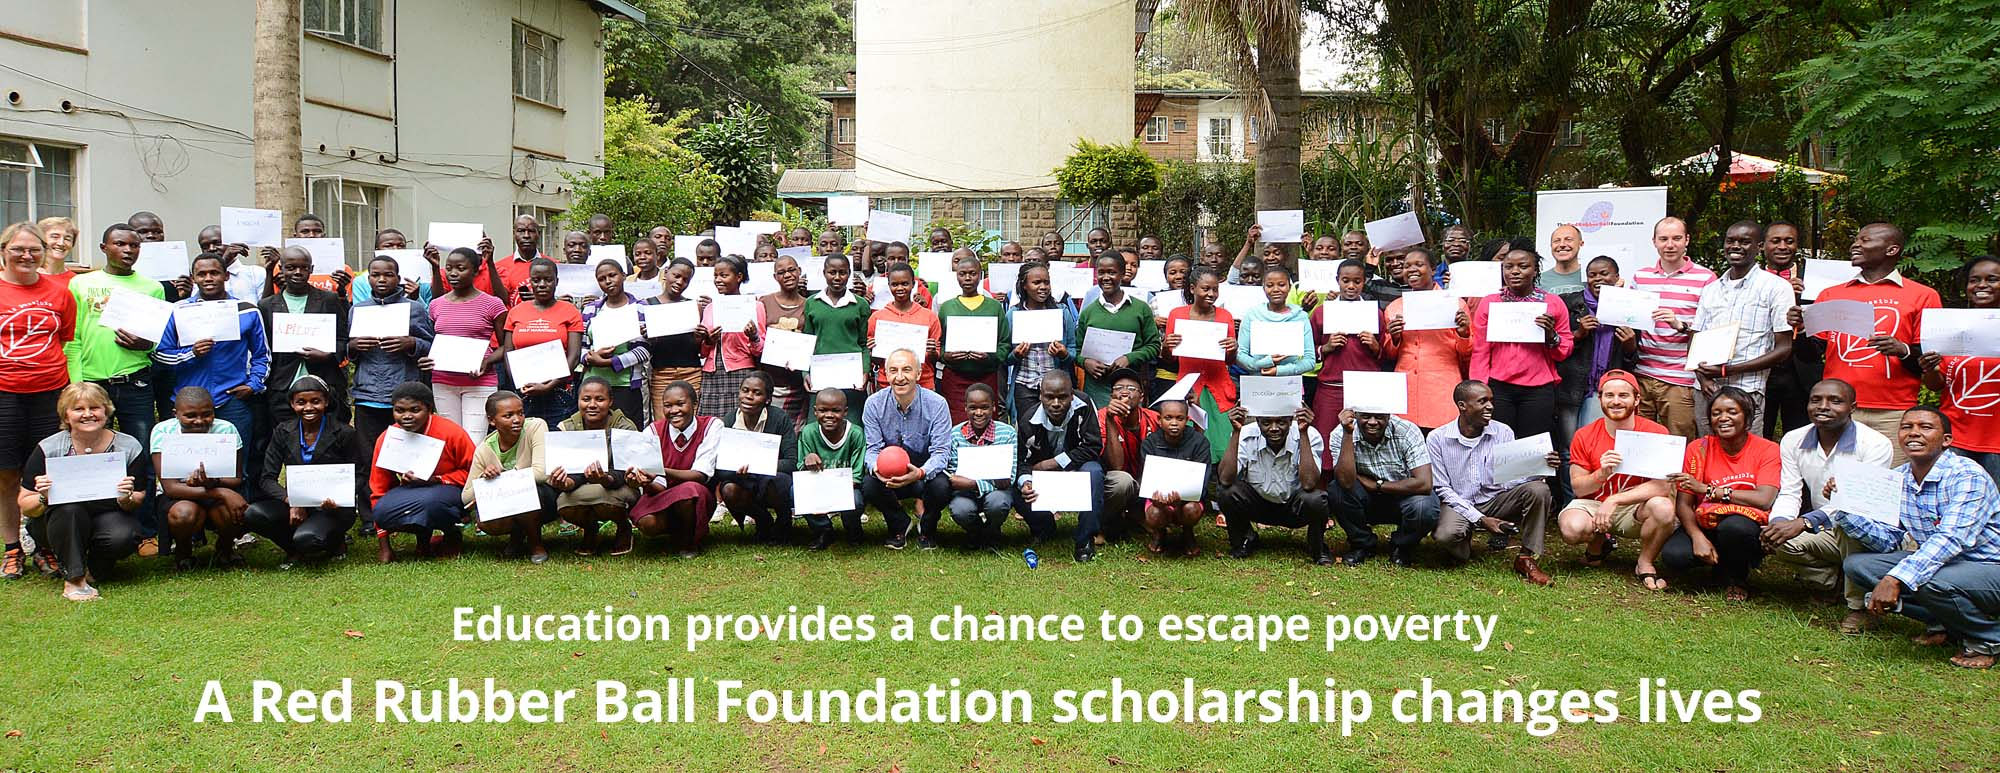 A Red Rubber Ball Foundation scholarship changes lives